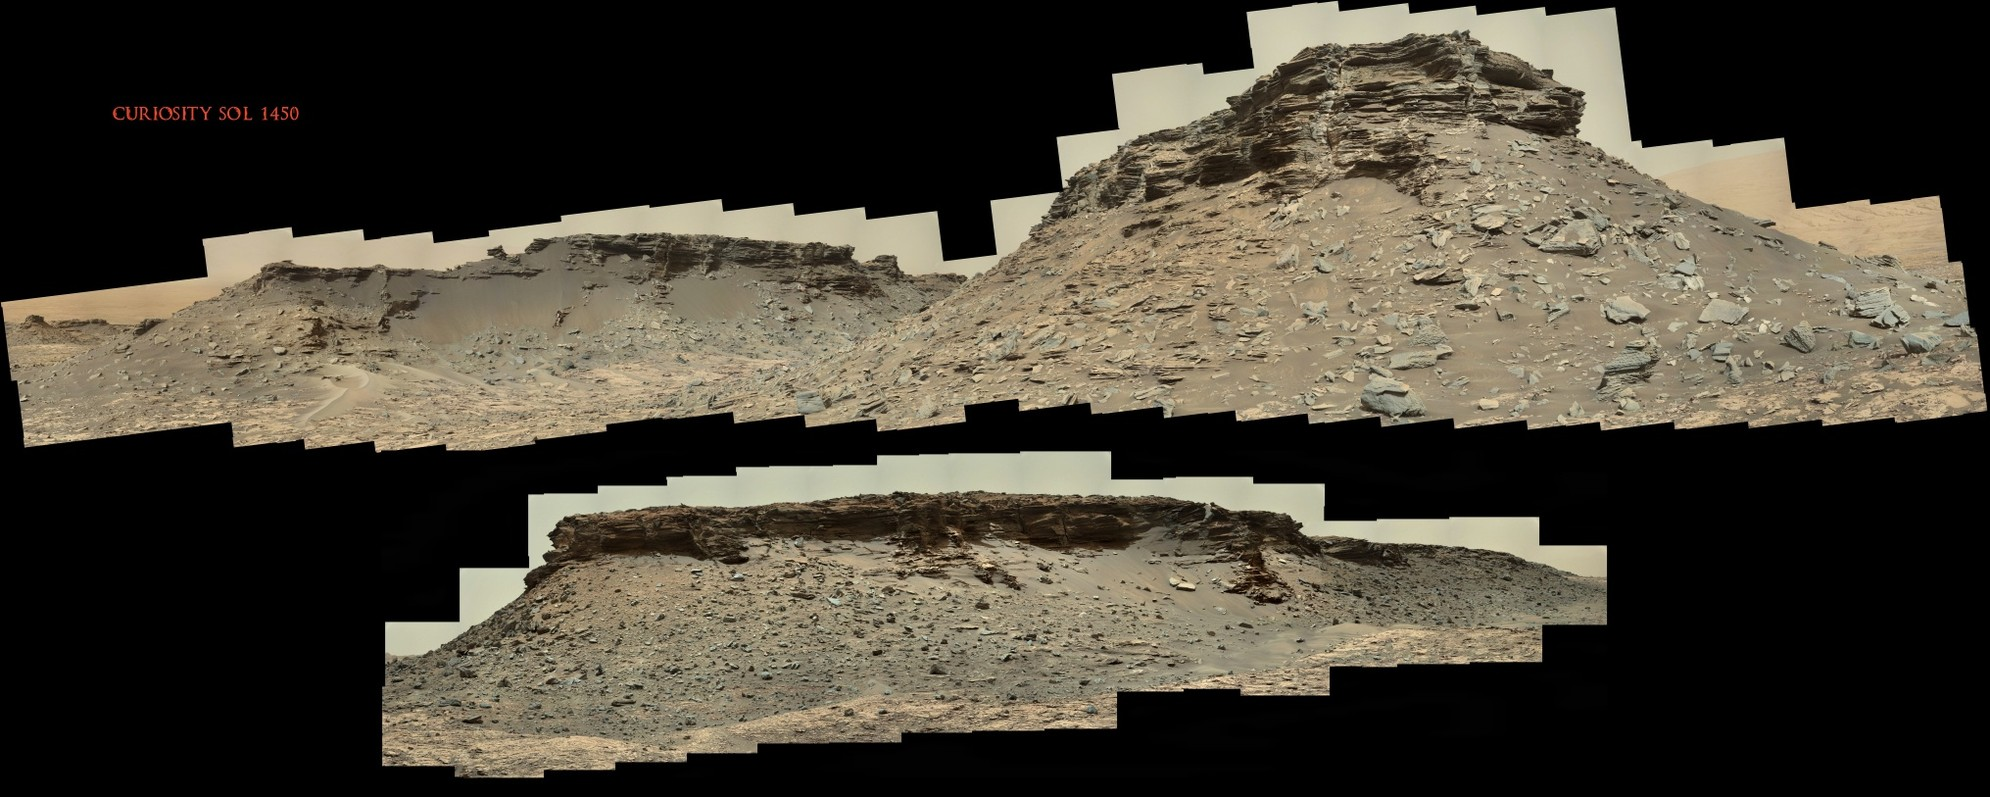 Curiosity Sol 1450 Riding in the Ruins